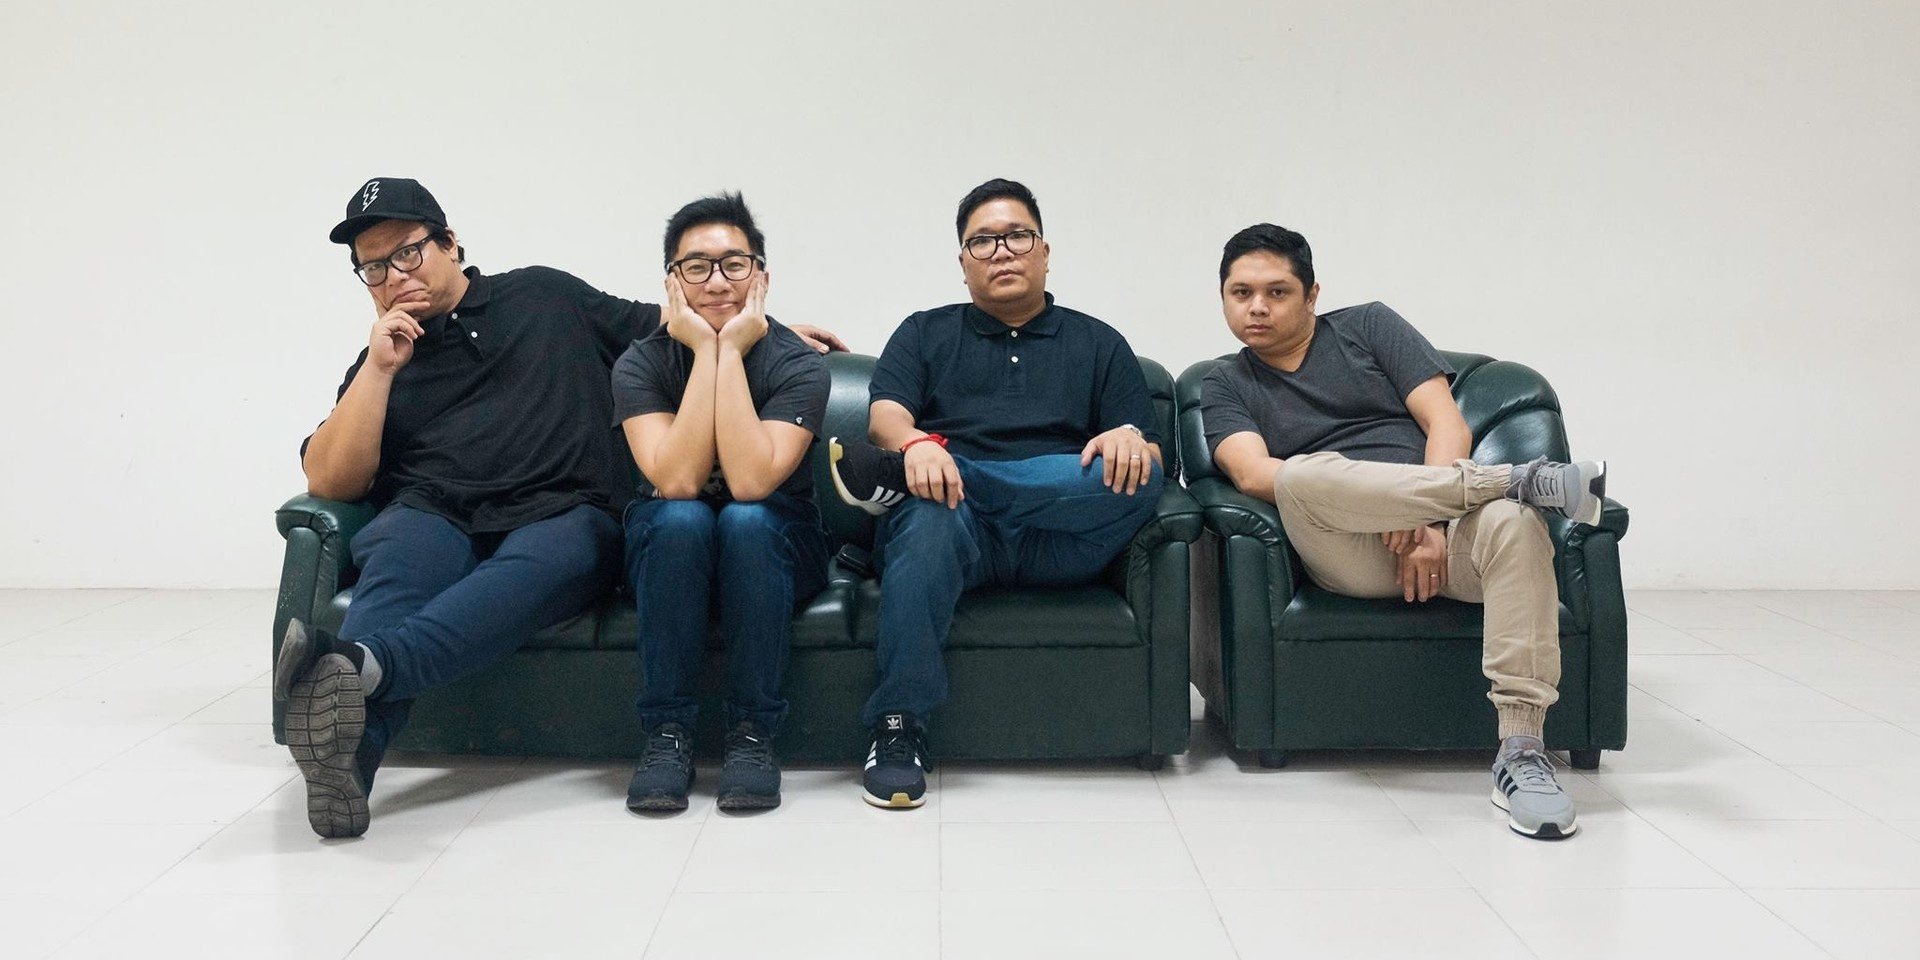 The Itchyworms to perform in Sweden this September